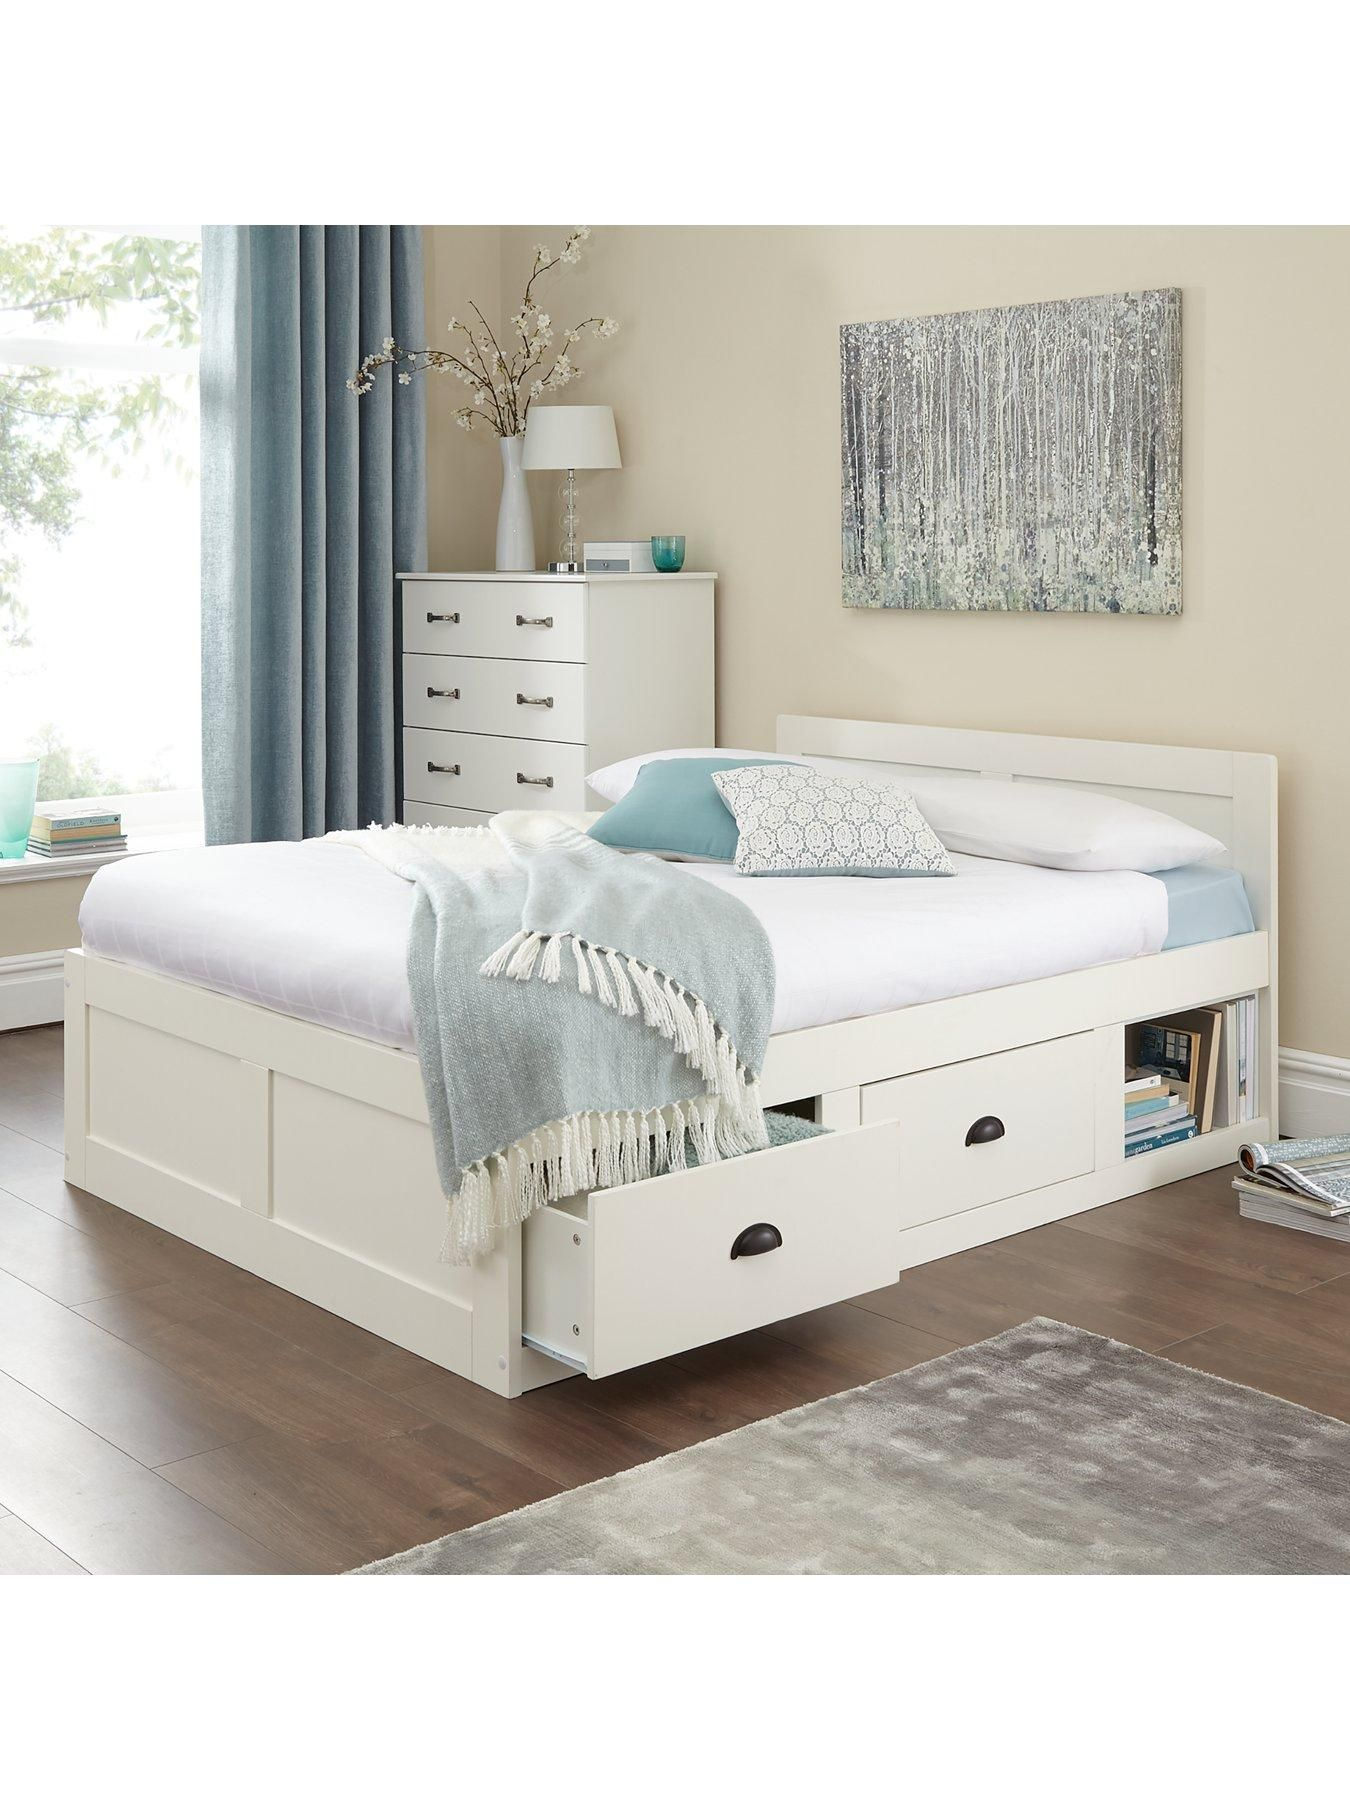 Storage Bed In Small Double And King Sizes With Money Saving Mattress Offeroptional Home Embly Service Available Chic Style Meets